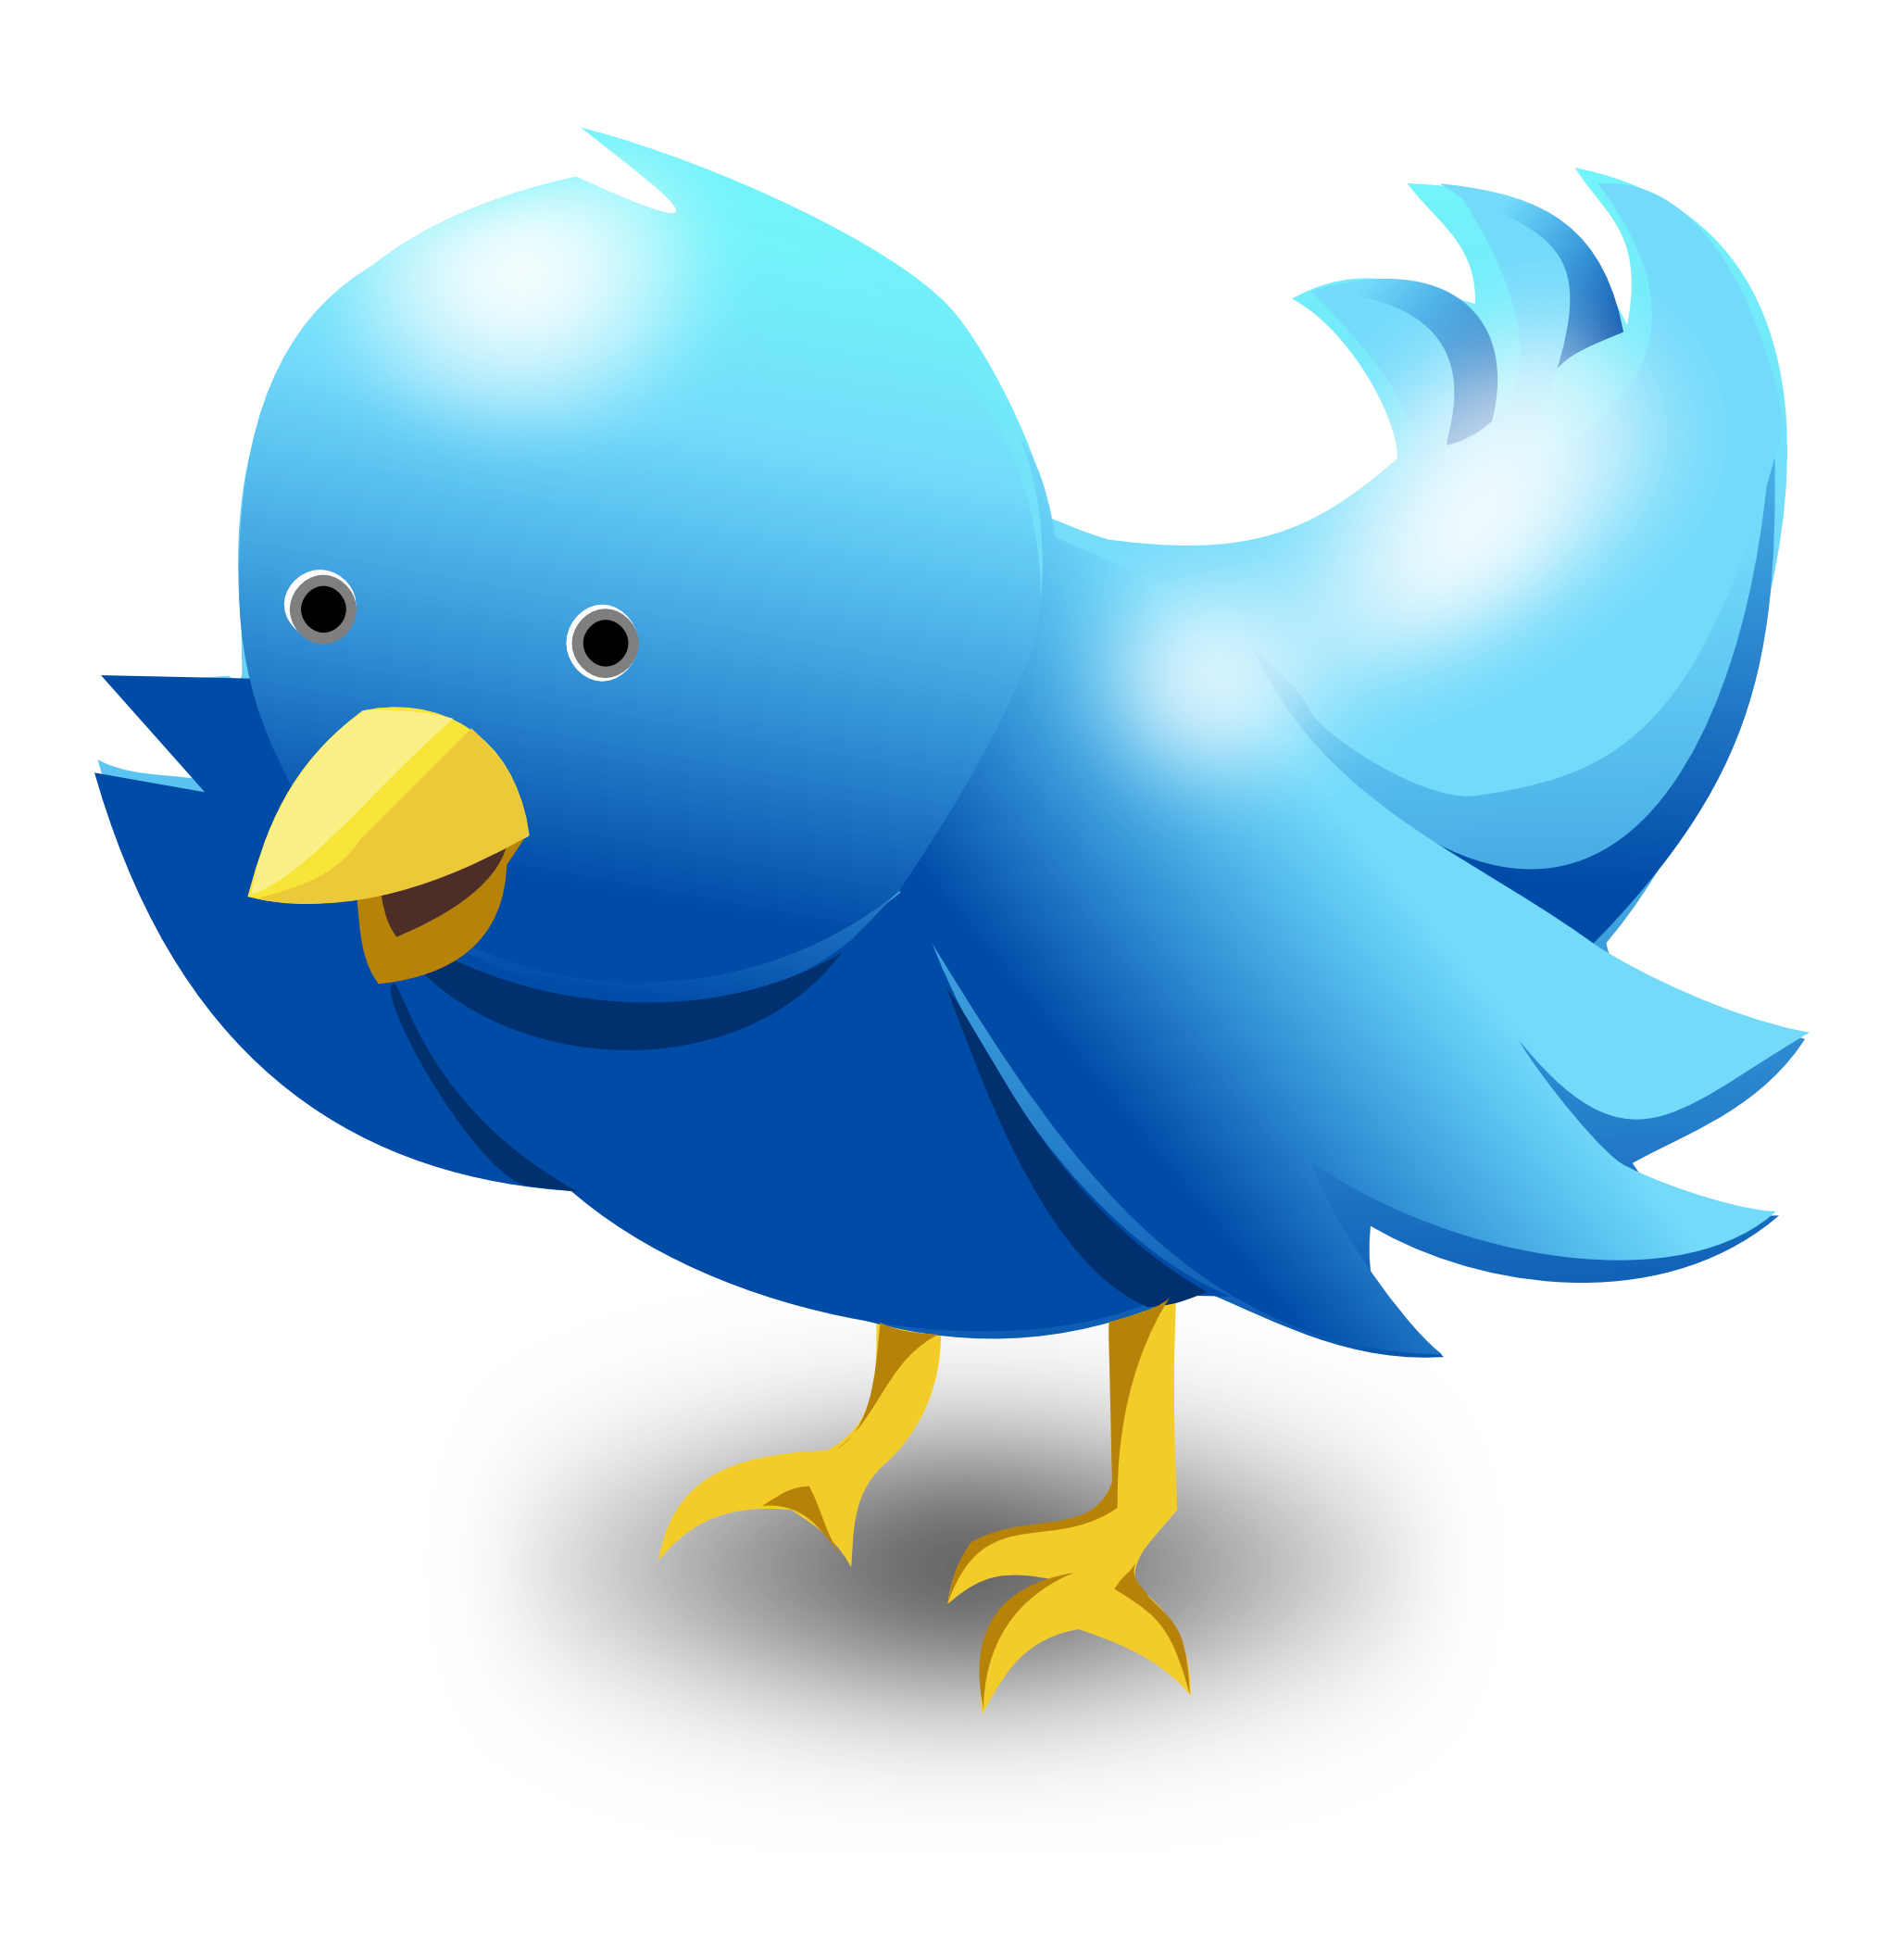 Logo Twitter Vector Bird Free Transparent Image HQ PNG Image